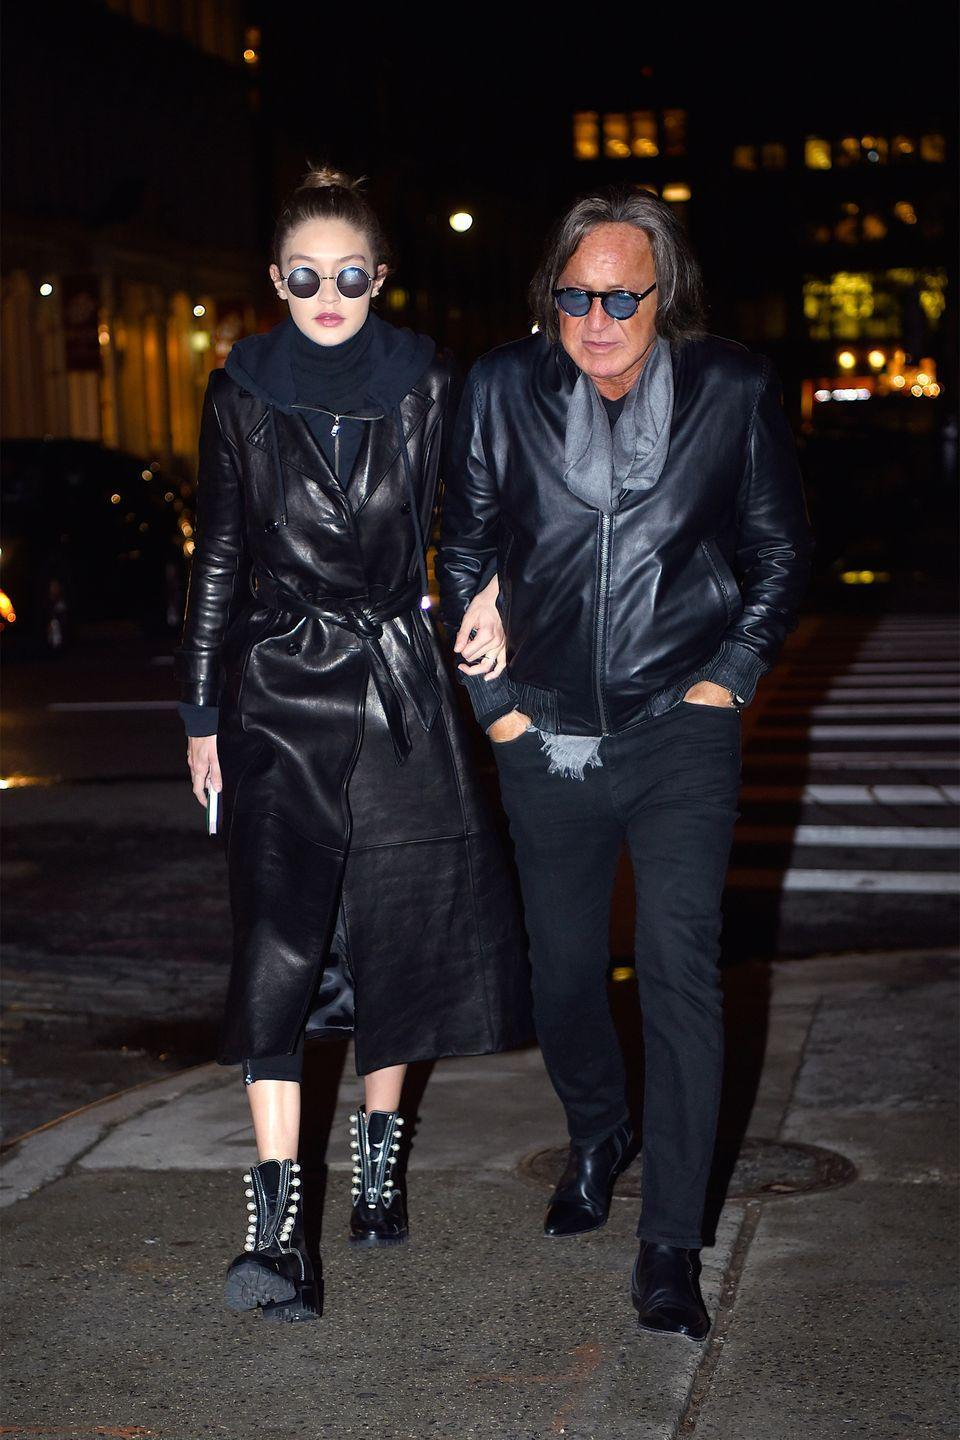 <p>In a navy hooded sweatshirt under a black leather trench coat by Frame with round sunglasses and studded combat boots while out in New York City with her father.</p>